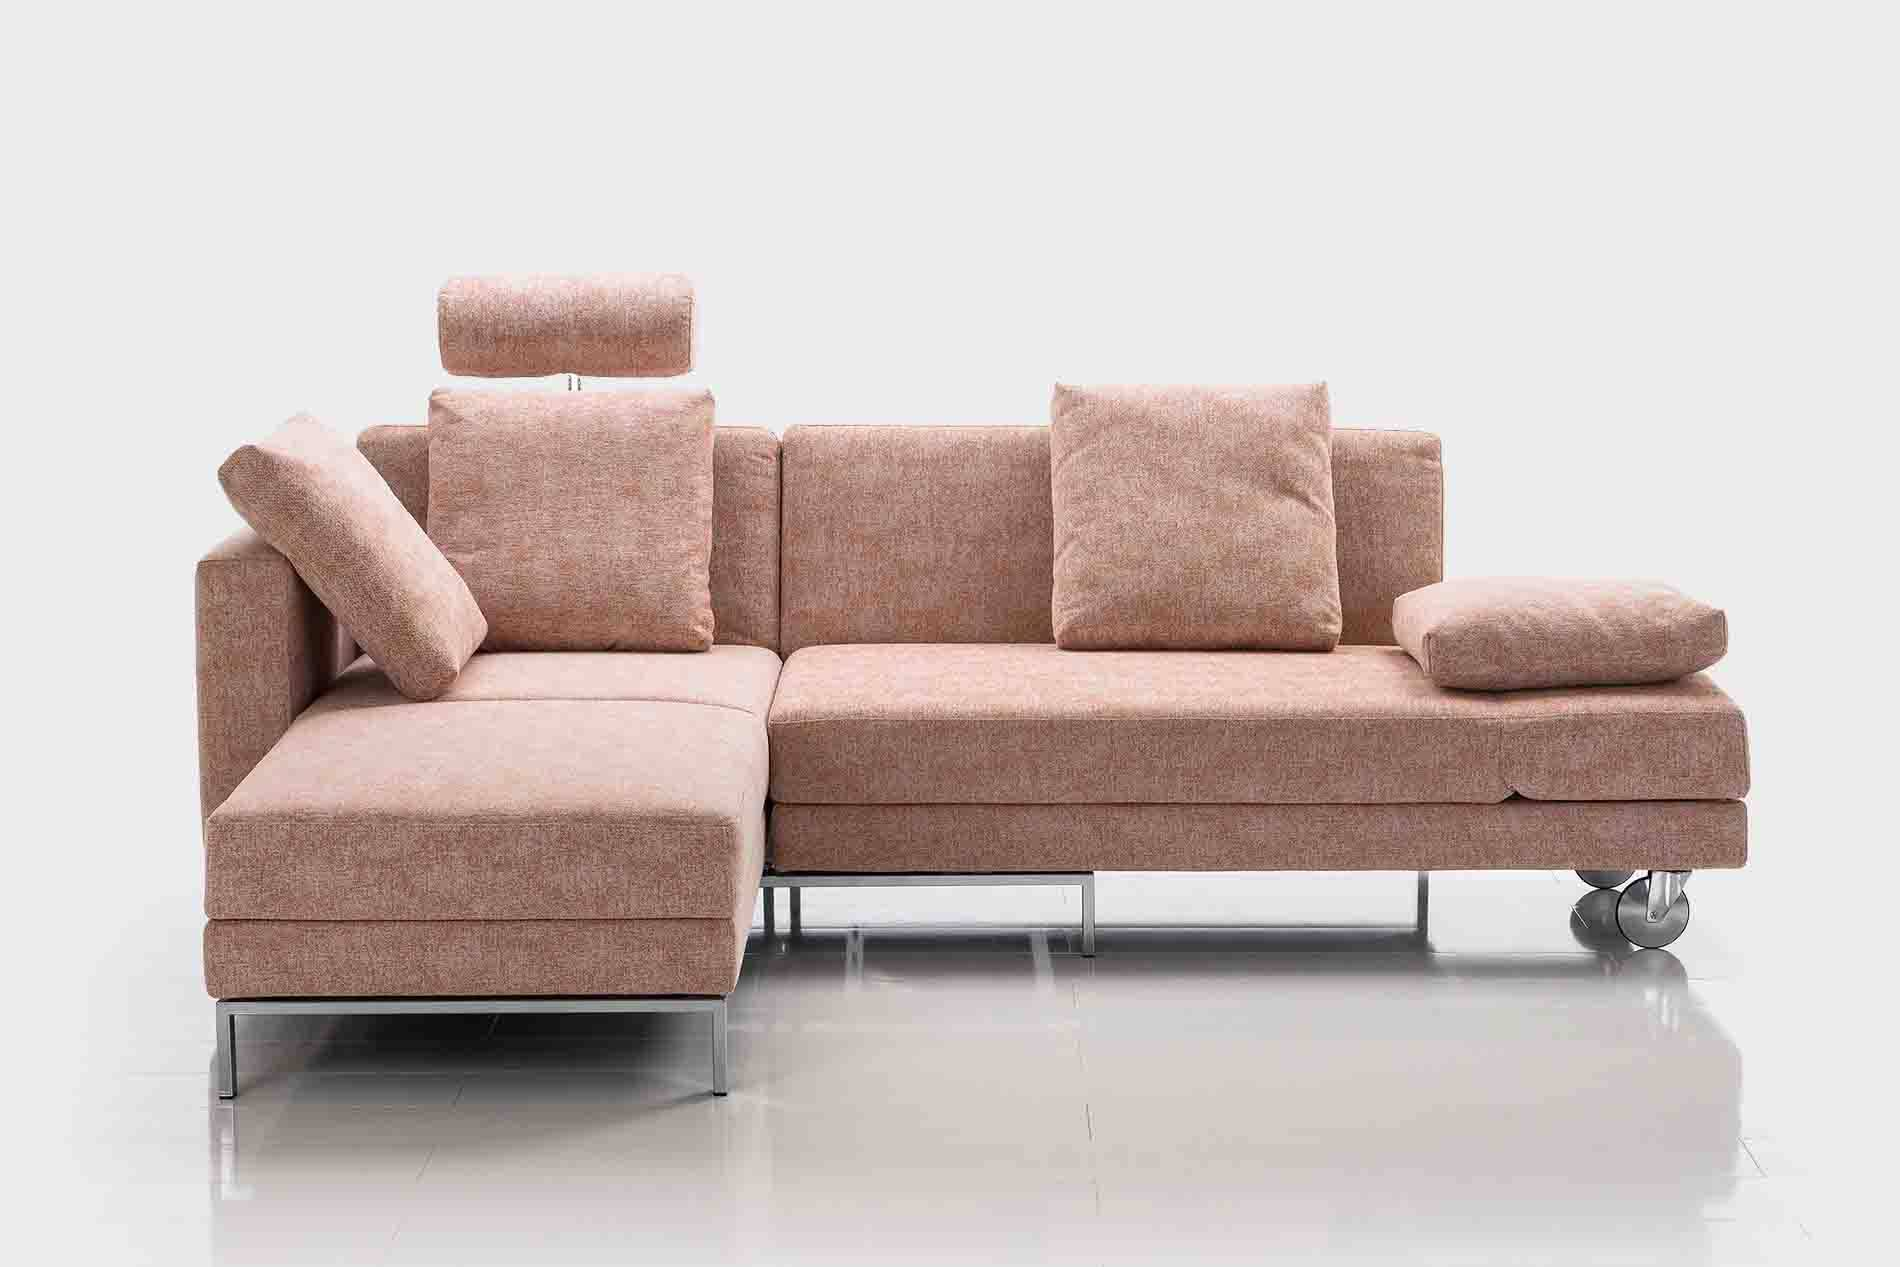 exklusive ecksofas fabulous sofa leominster sitzer with exklusive ecksofas finest sofa. Black Bedroom Furniture Sets. Home Design Ideas